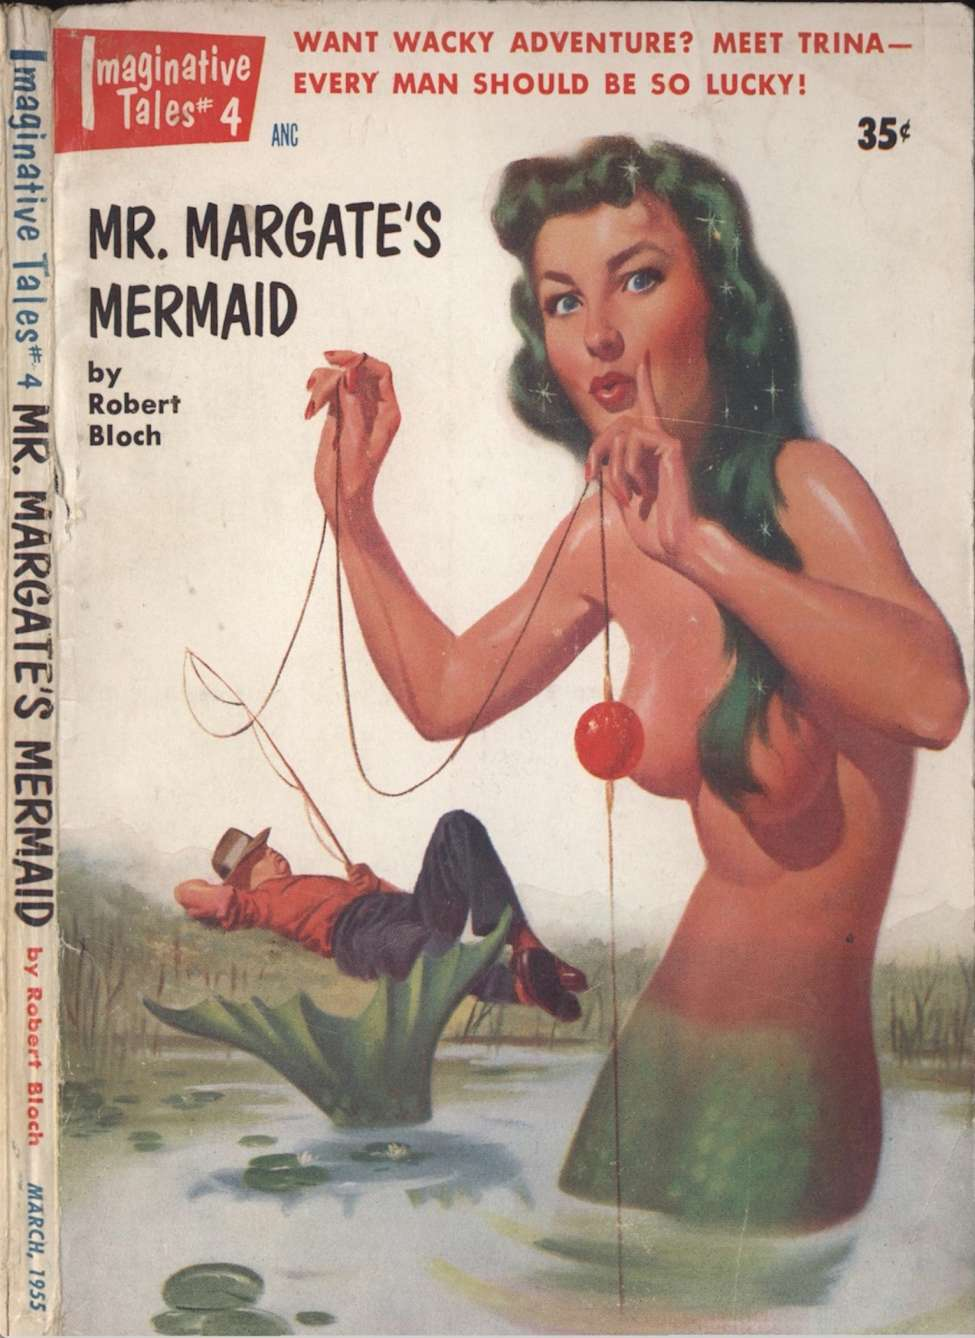 Comic Book Cover For Imaginative Tales v01 04 - Mr. Margate's Mermaid - Robert Bloch